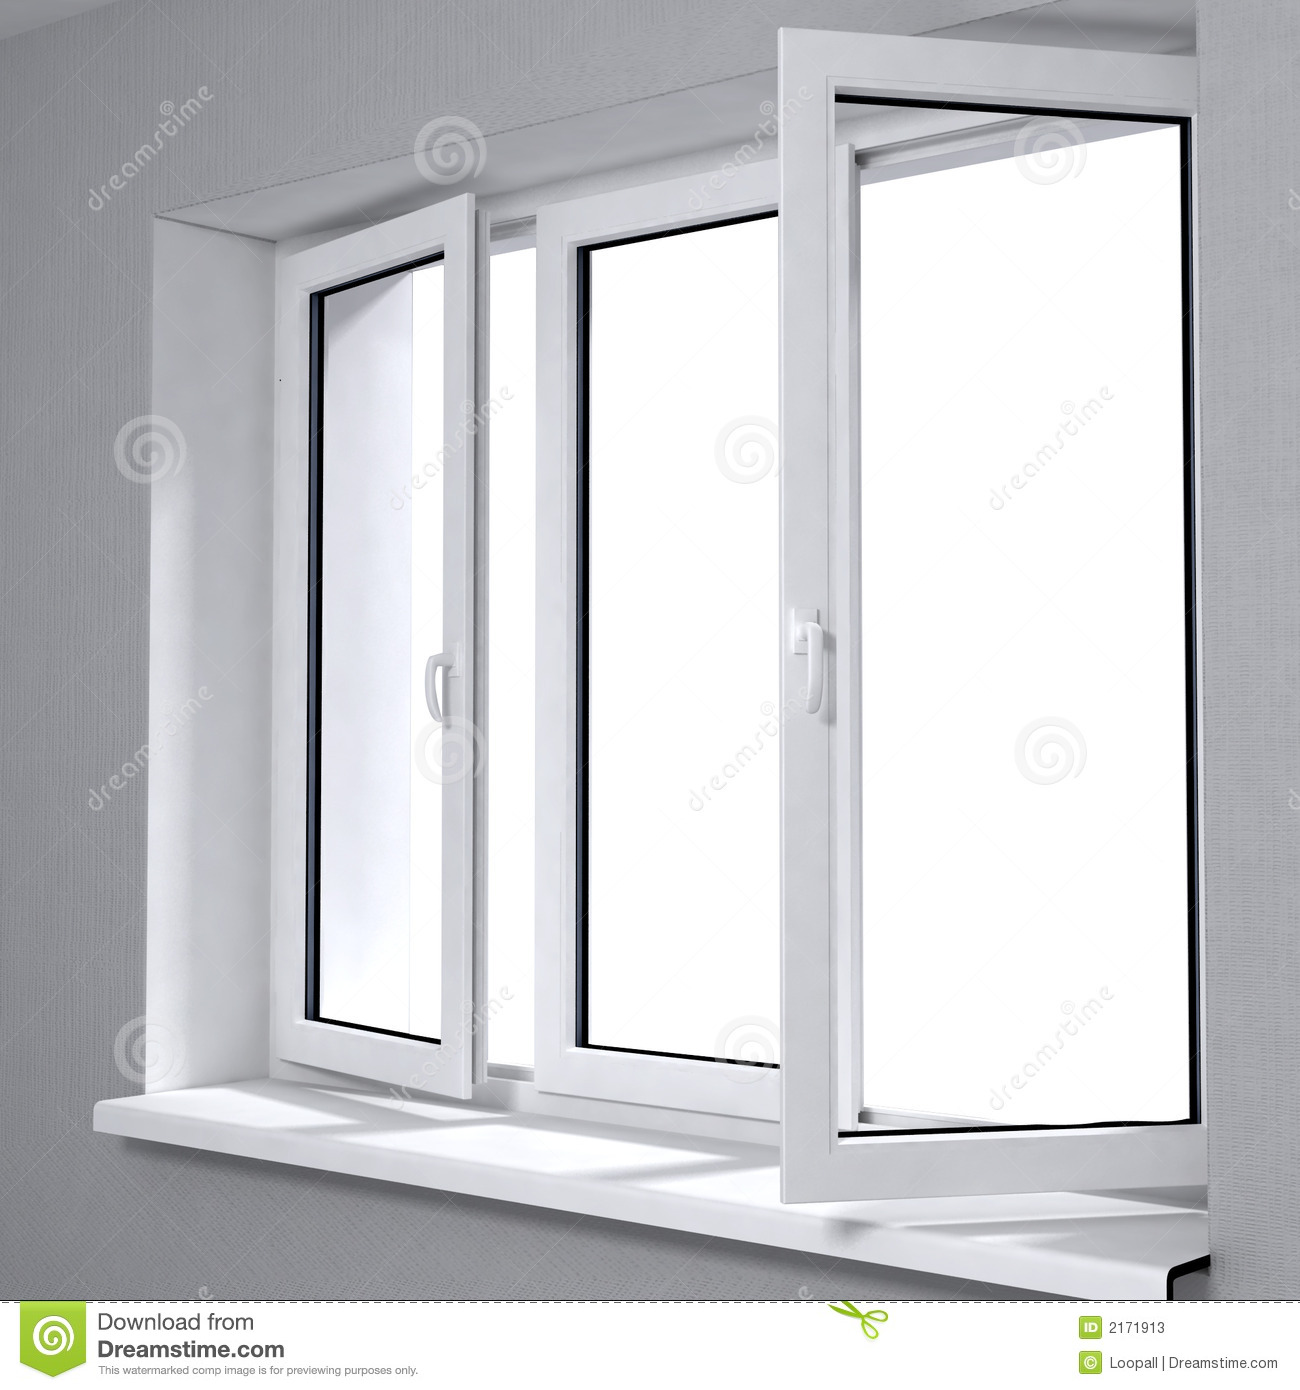 New plastic window stock photos image 2171913 for Acrylic windows cost